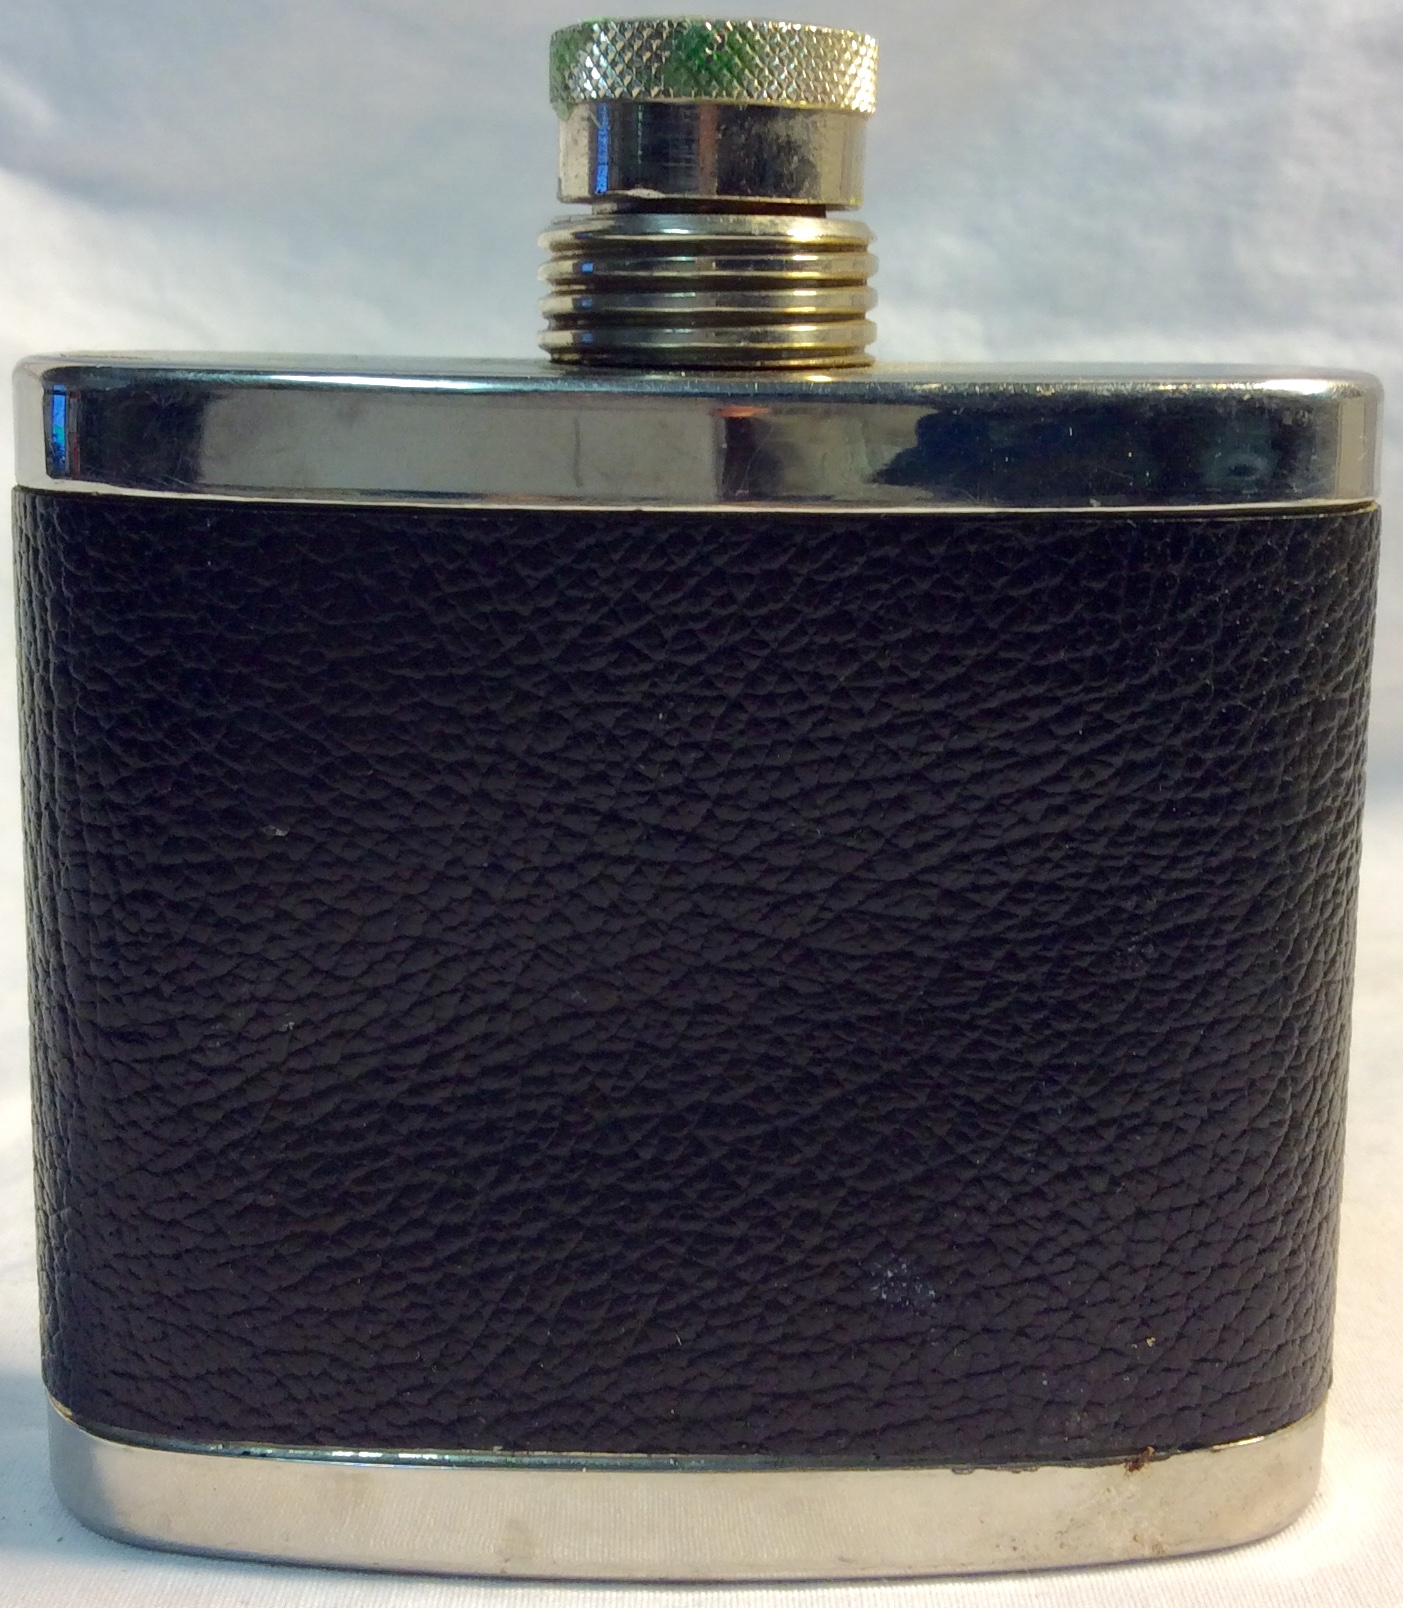 5oz silver flax with black leather cover